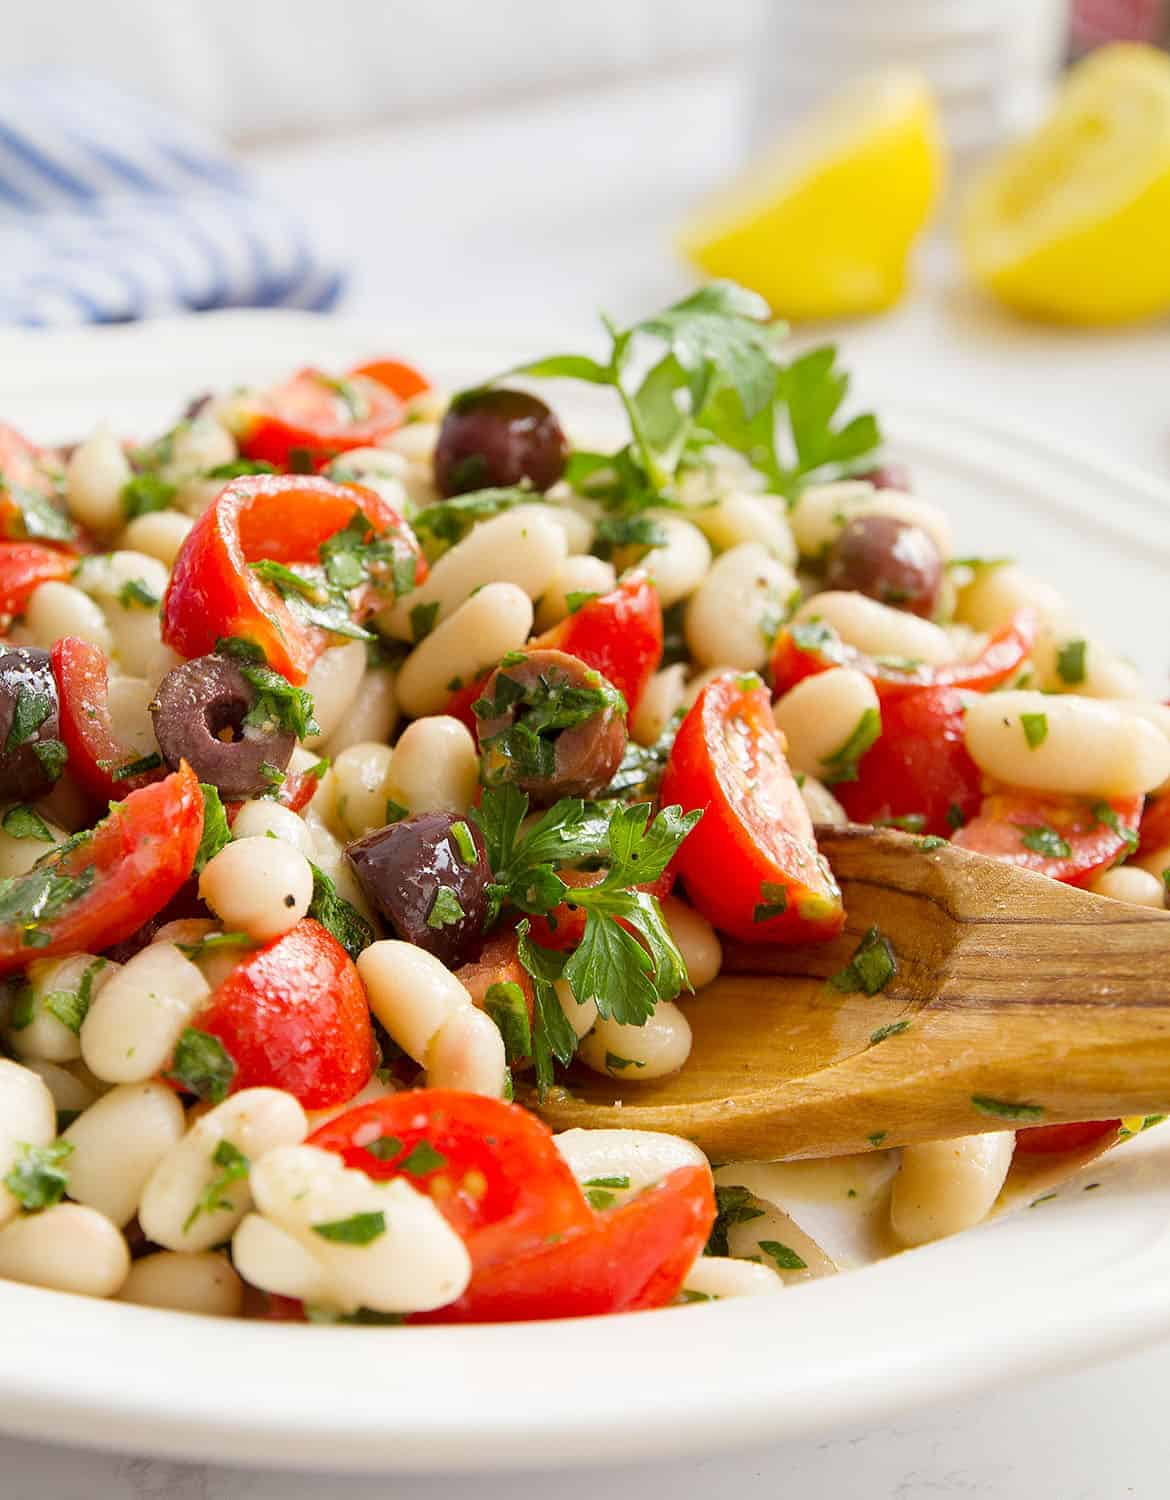 CANNELLINI BEAN RECIPES: VEGAN CANNELLINI BEAN SALAD by The Clever Meal